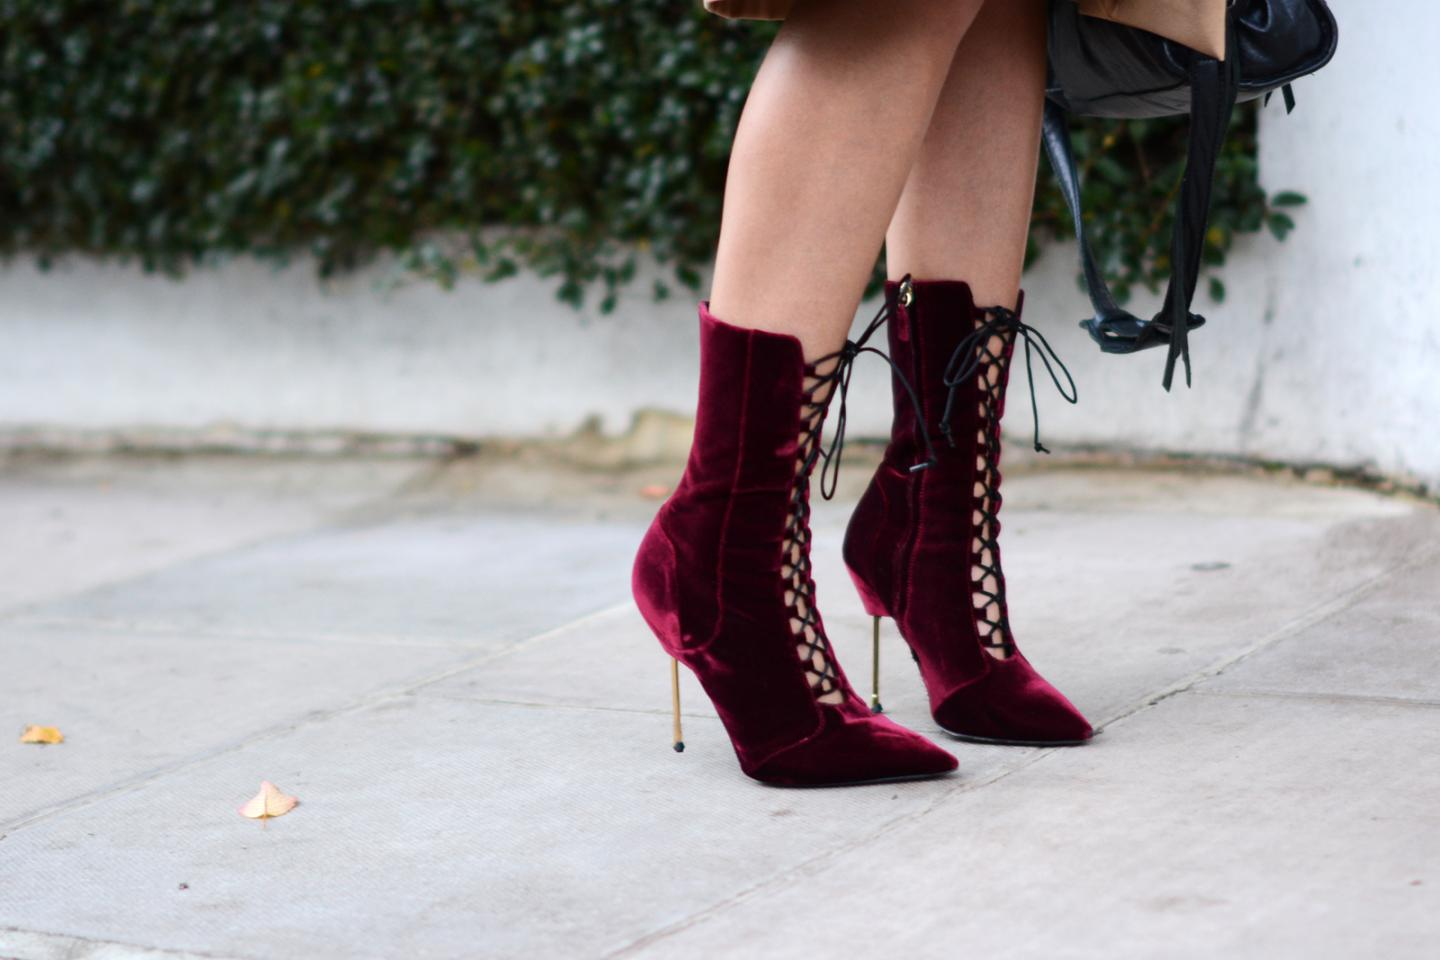 EJSTYLE - burgundy wine velvet lace up heeled boots by Kurt Geiger with metal heel